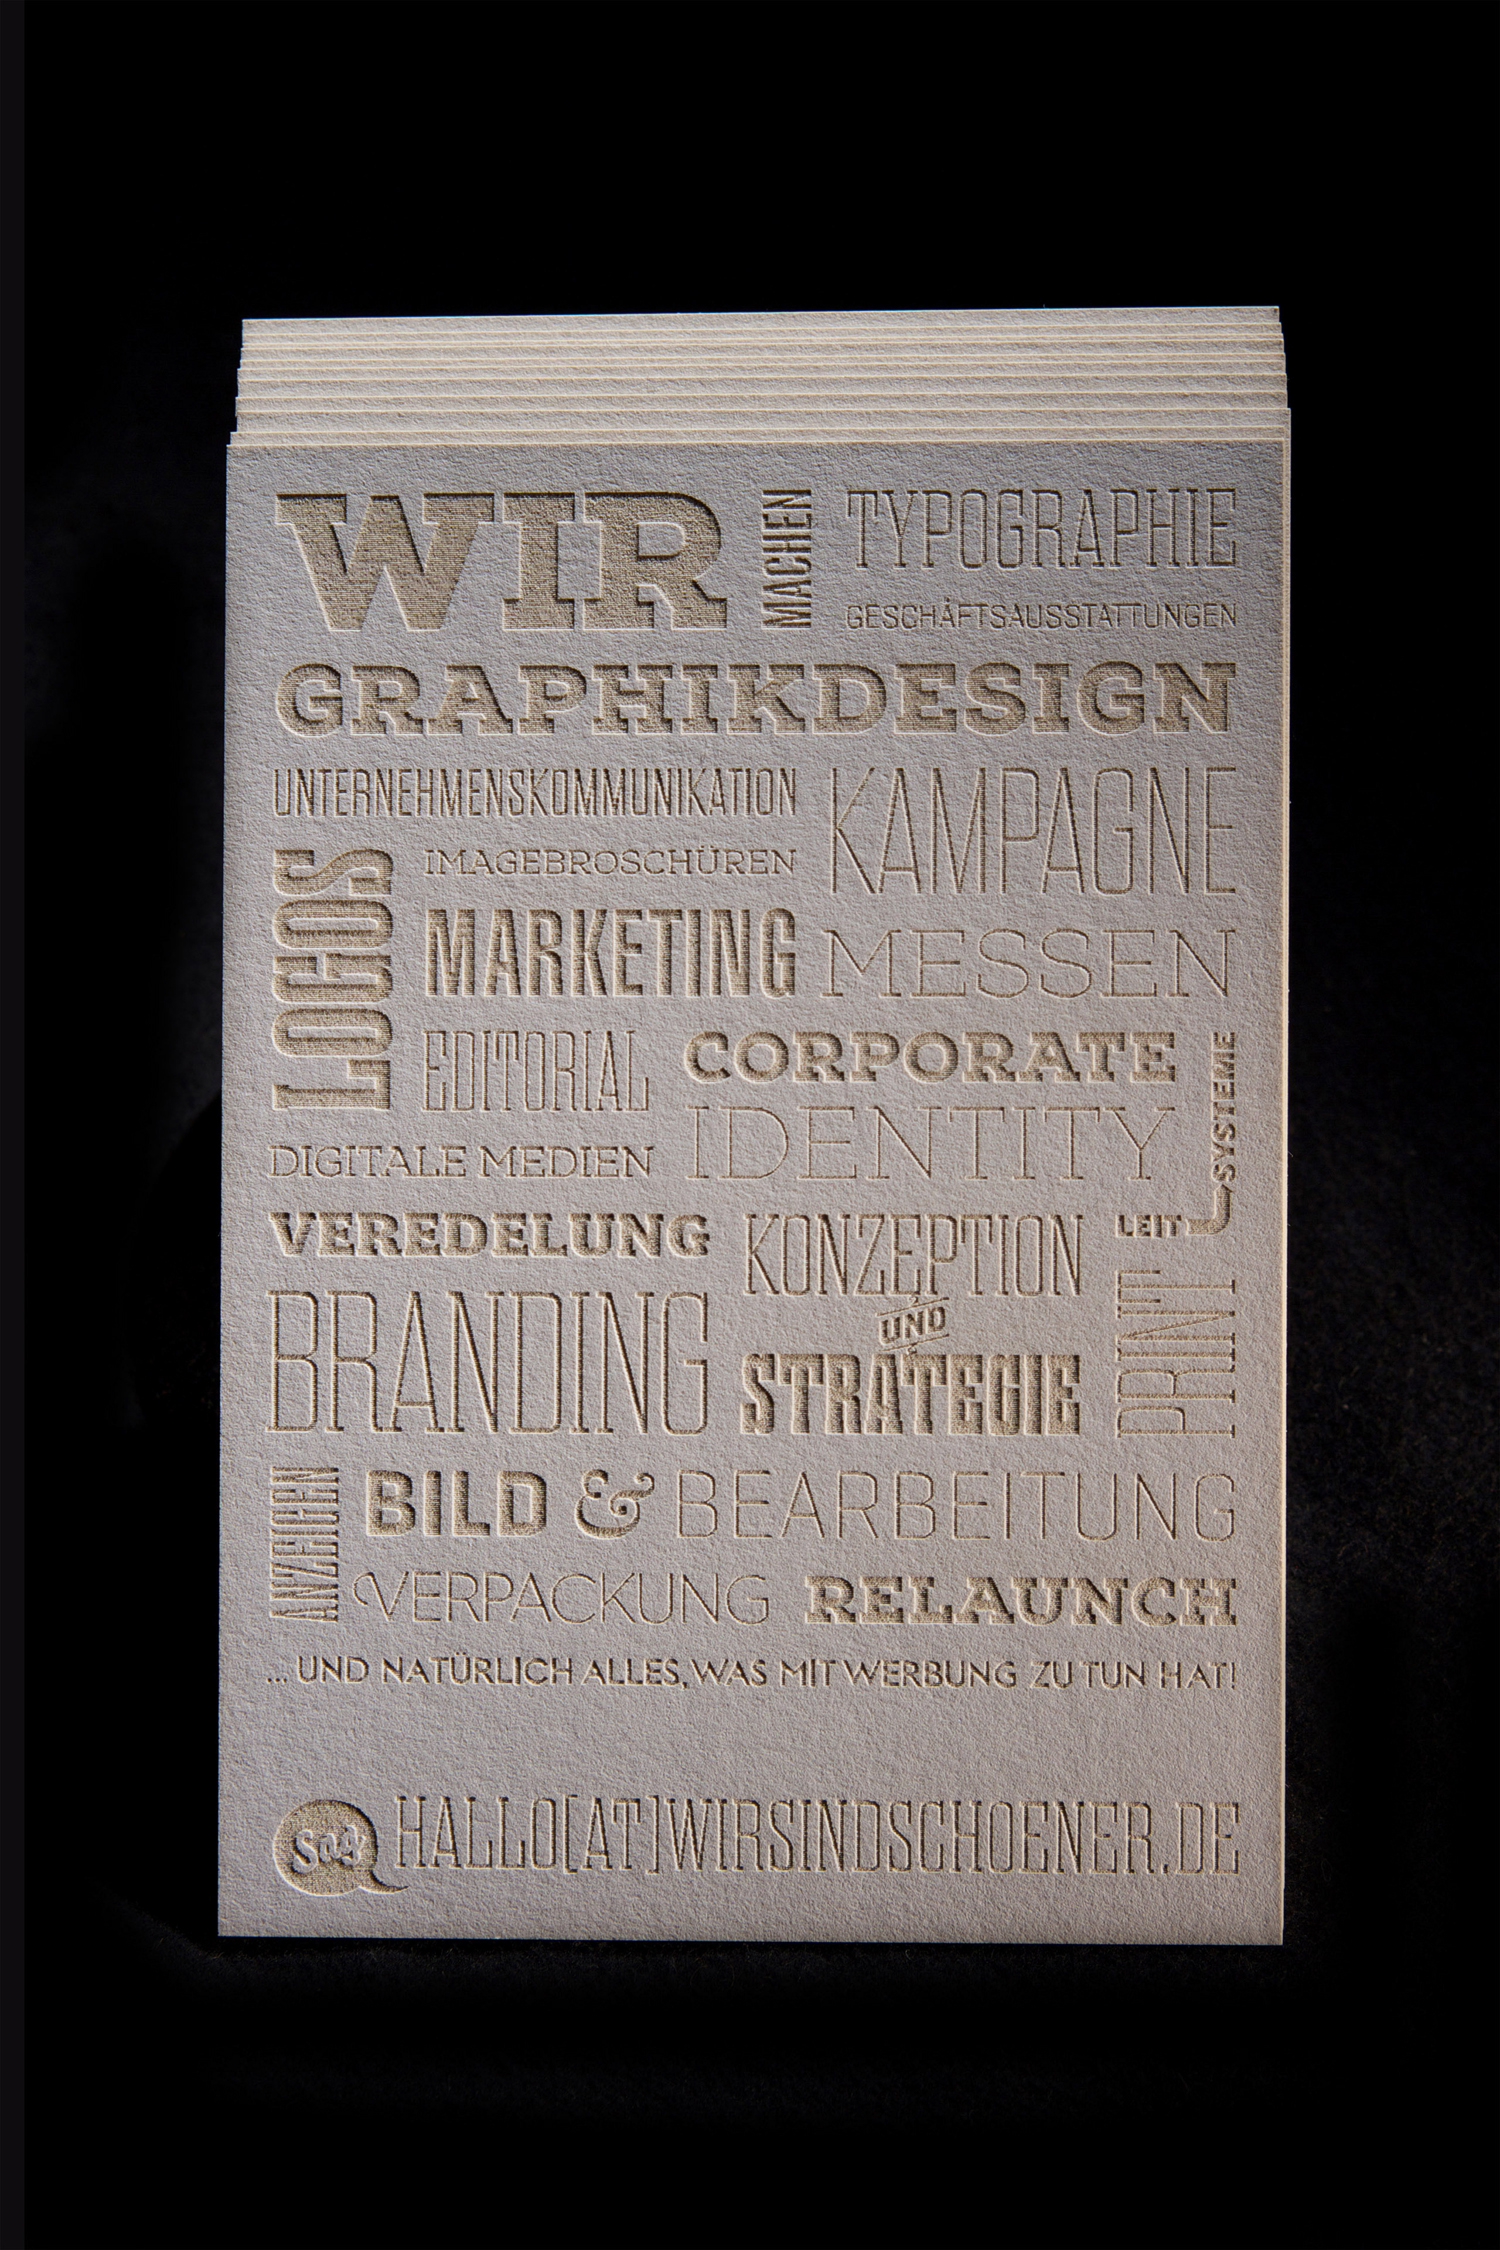 mailing business card laser etched on behance